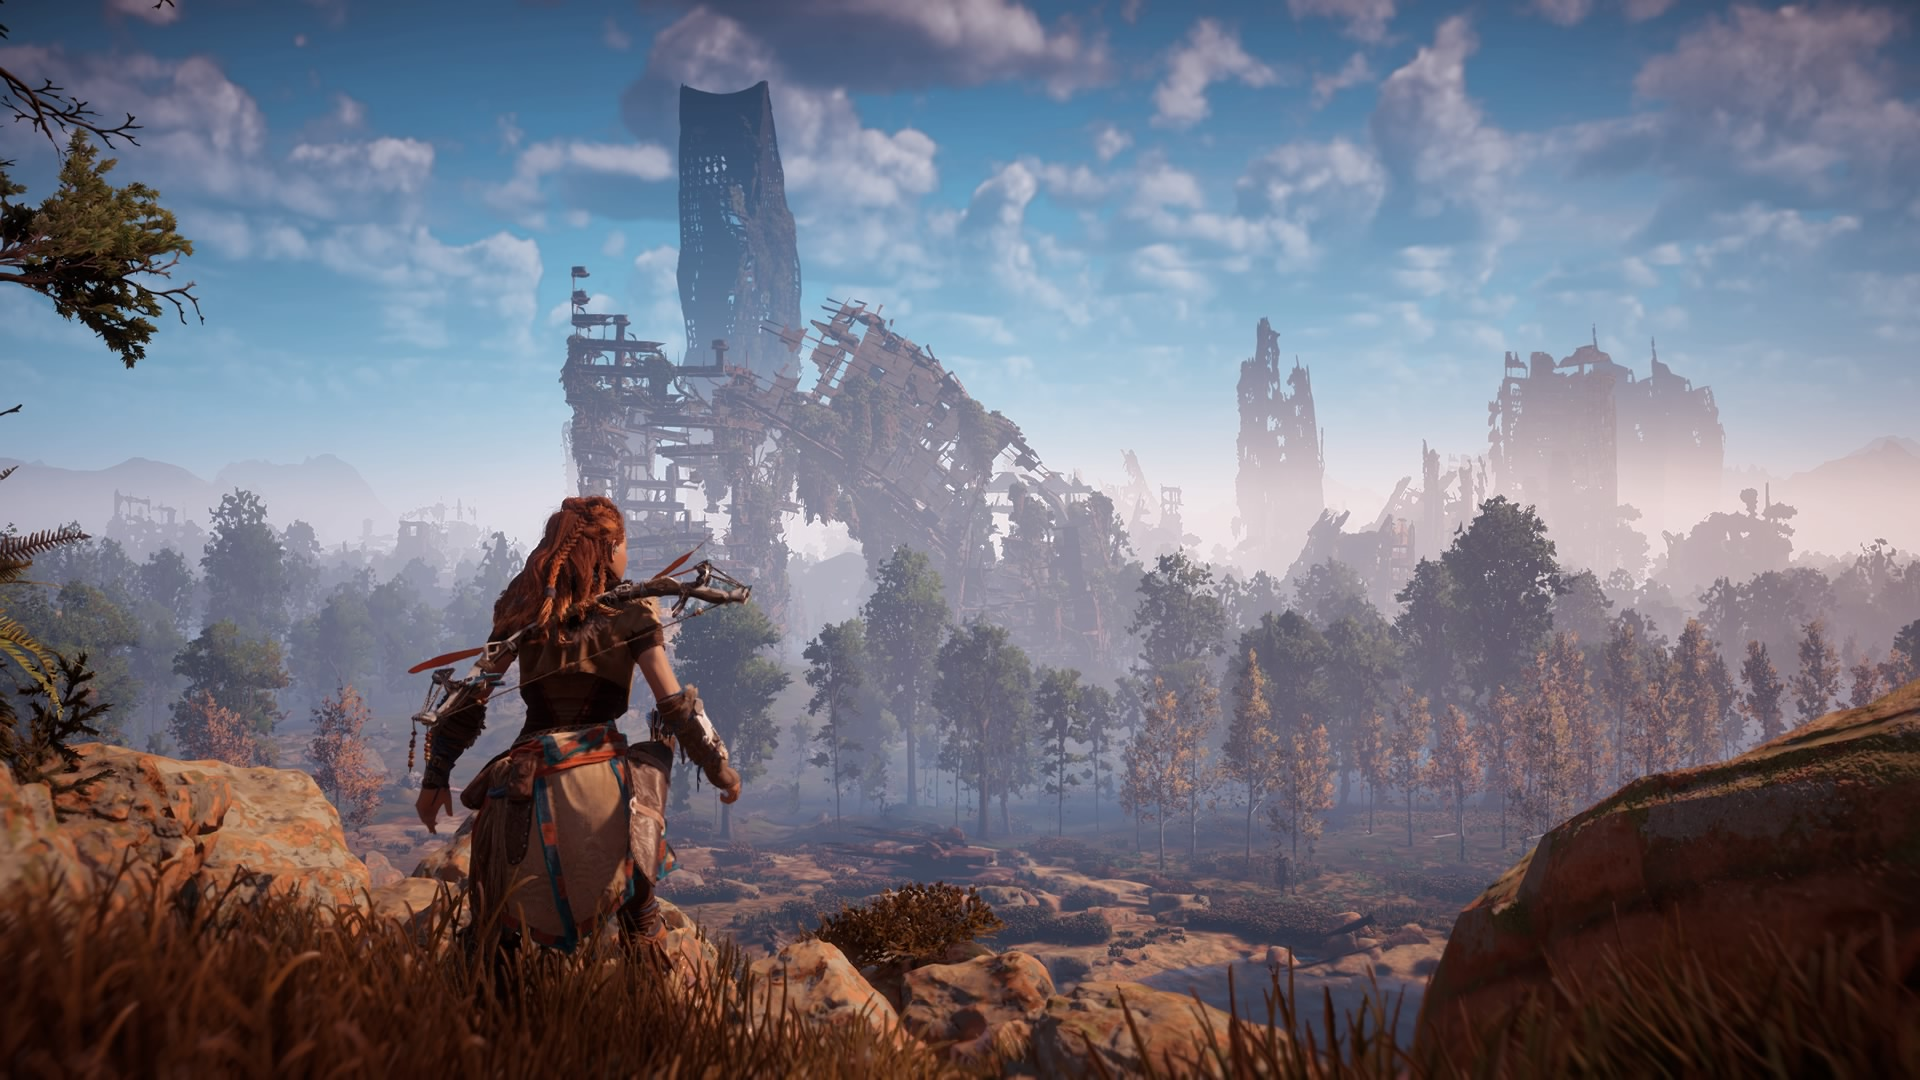 Horizon Zero Dawn Karte Ruinen.Teufelsleid Horizon Zero Dawn Wiki Fandom Powered By Wikia